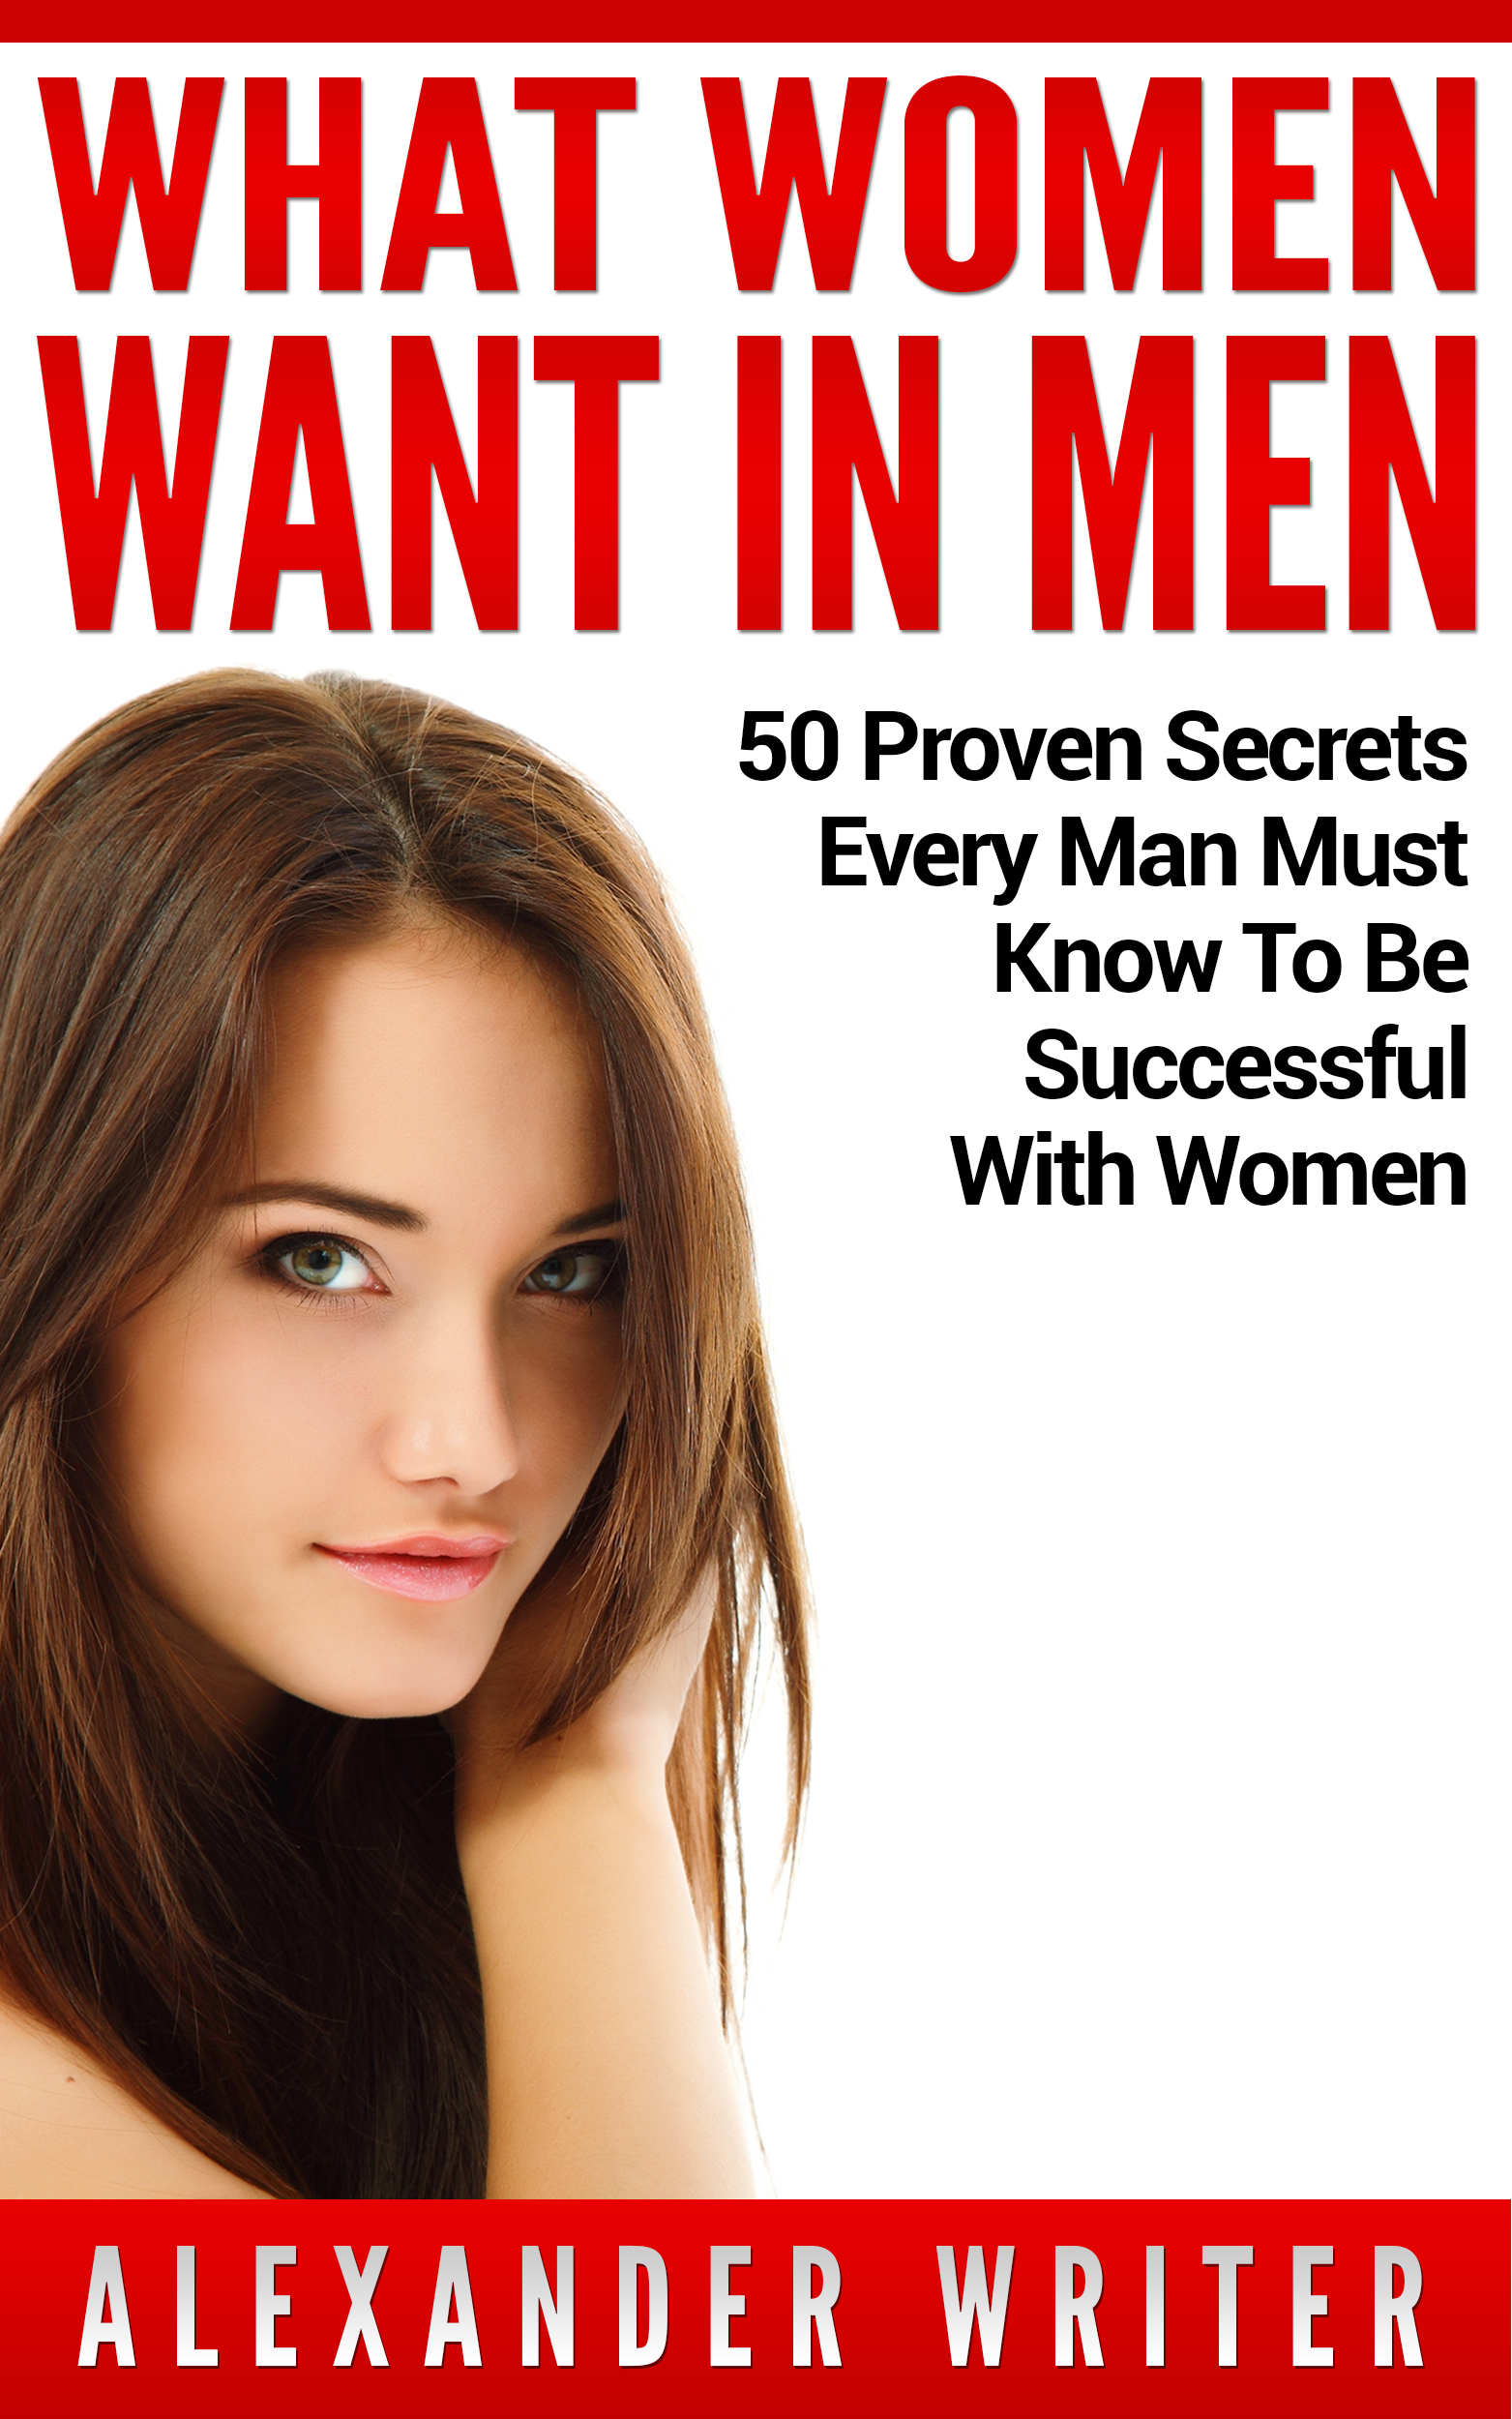 What Women Want in Men